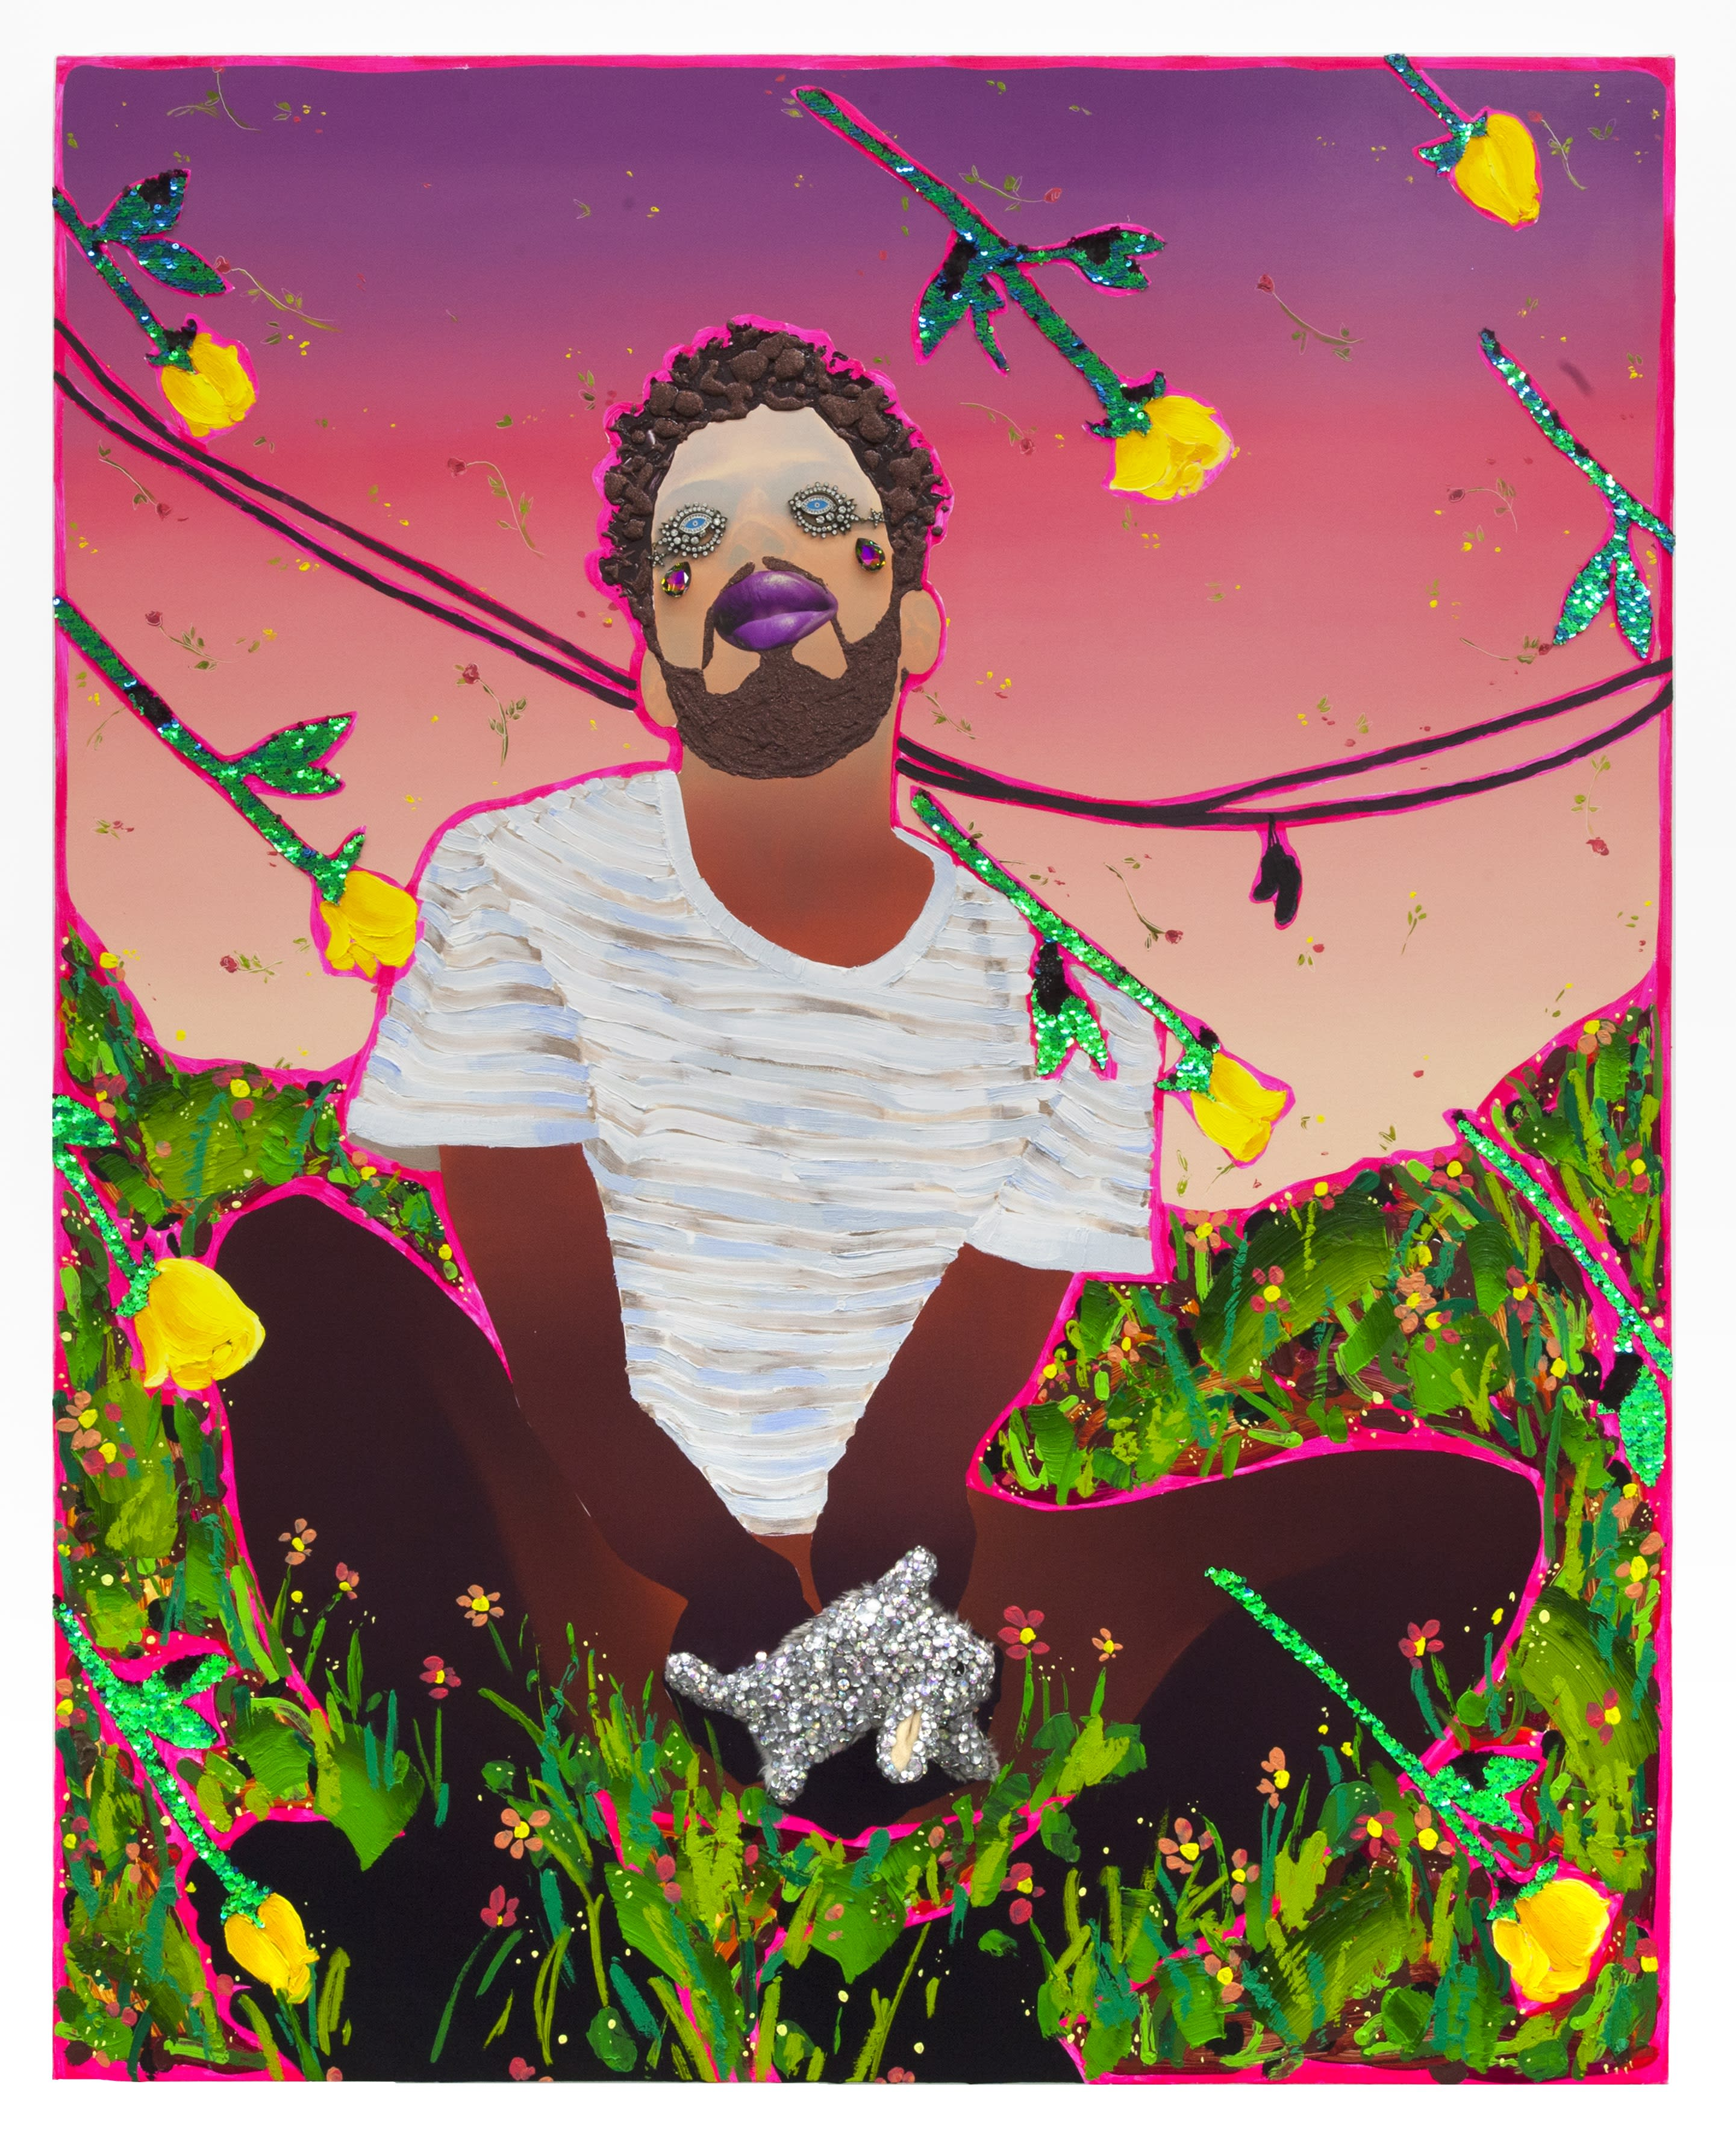 Within his works, many of which are self-portraits, he turns the Black queer body into a sensual, ethereal being, whose existence is desired by all.